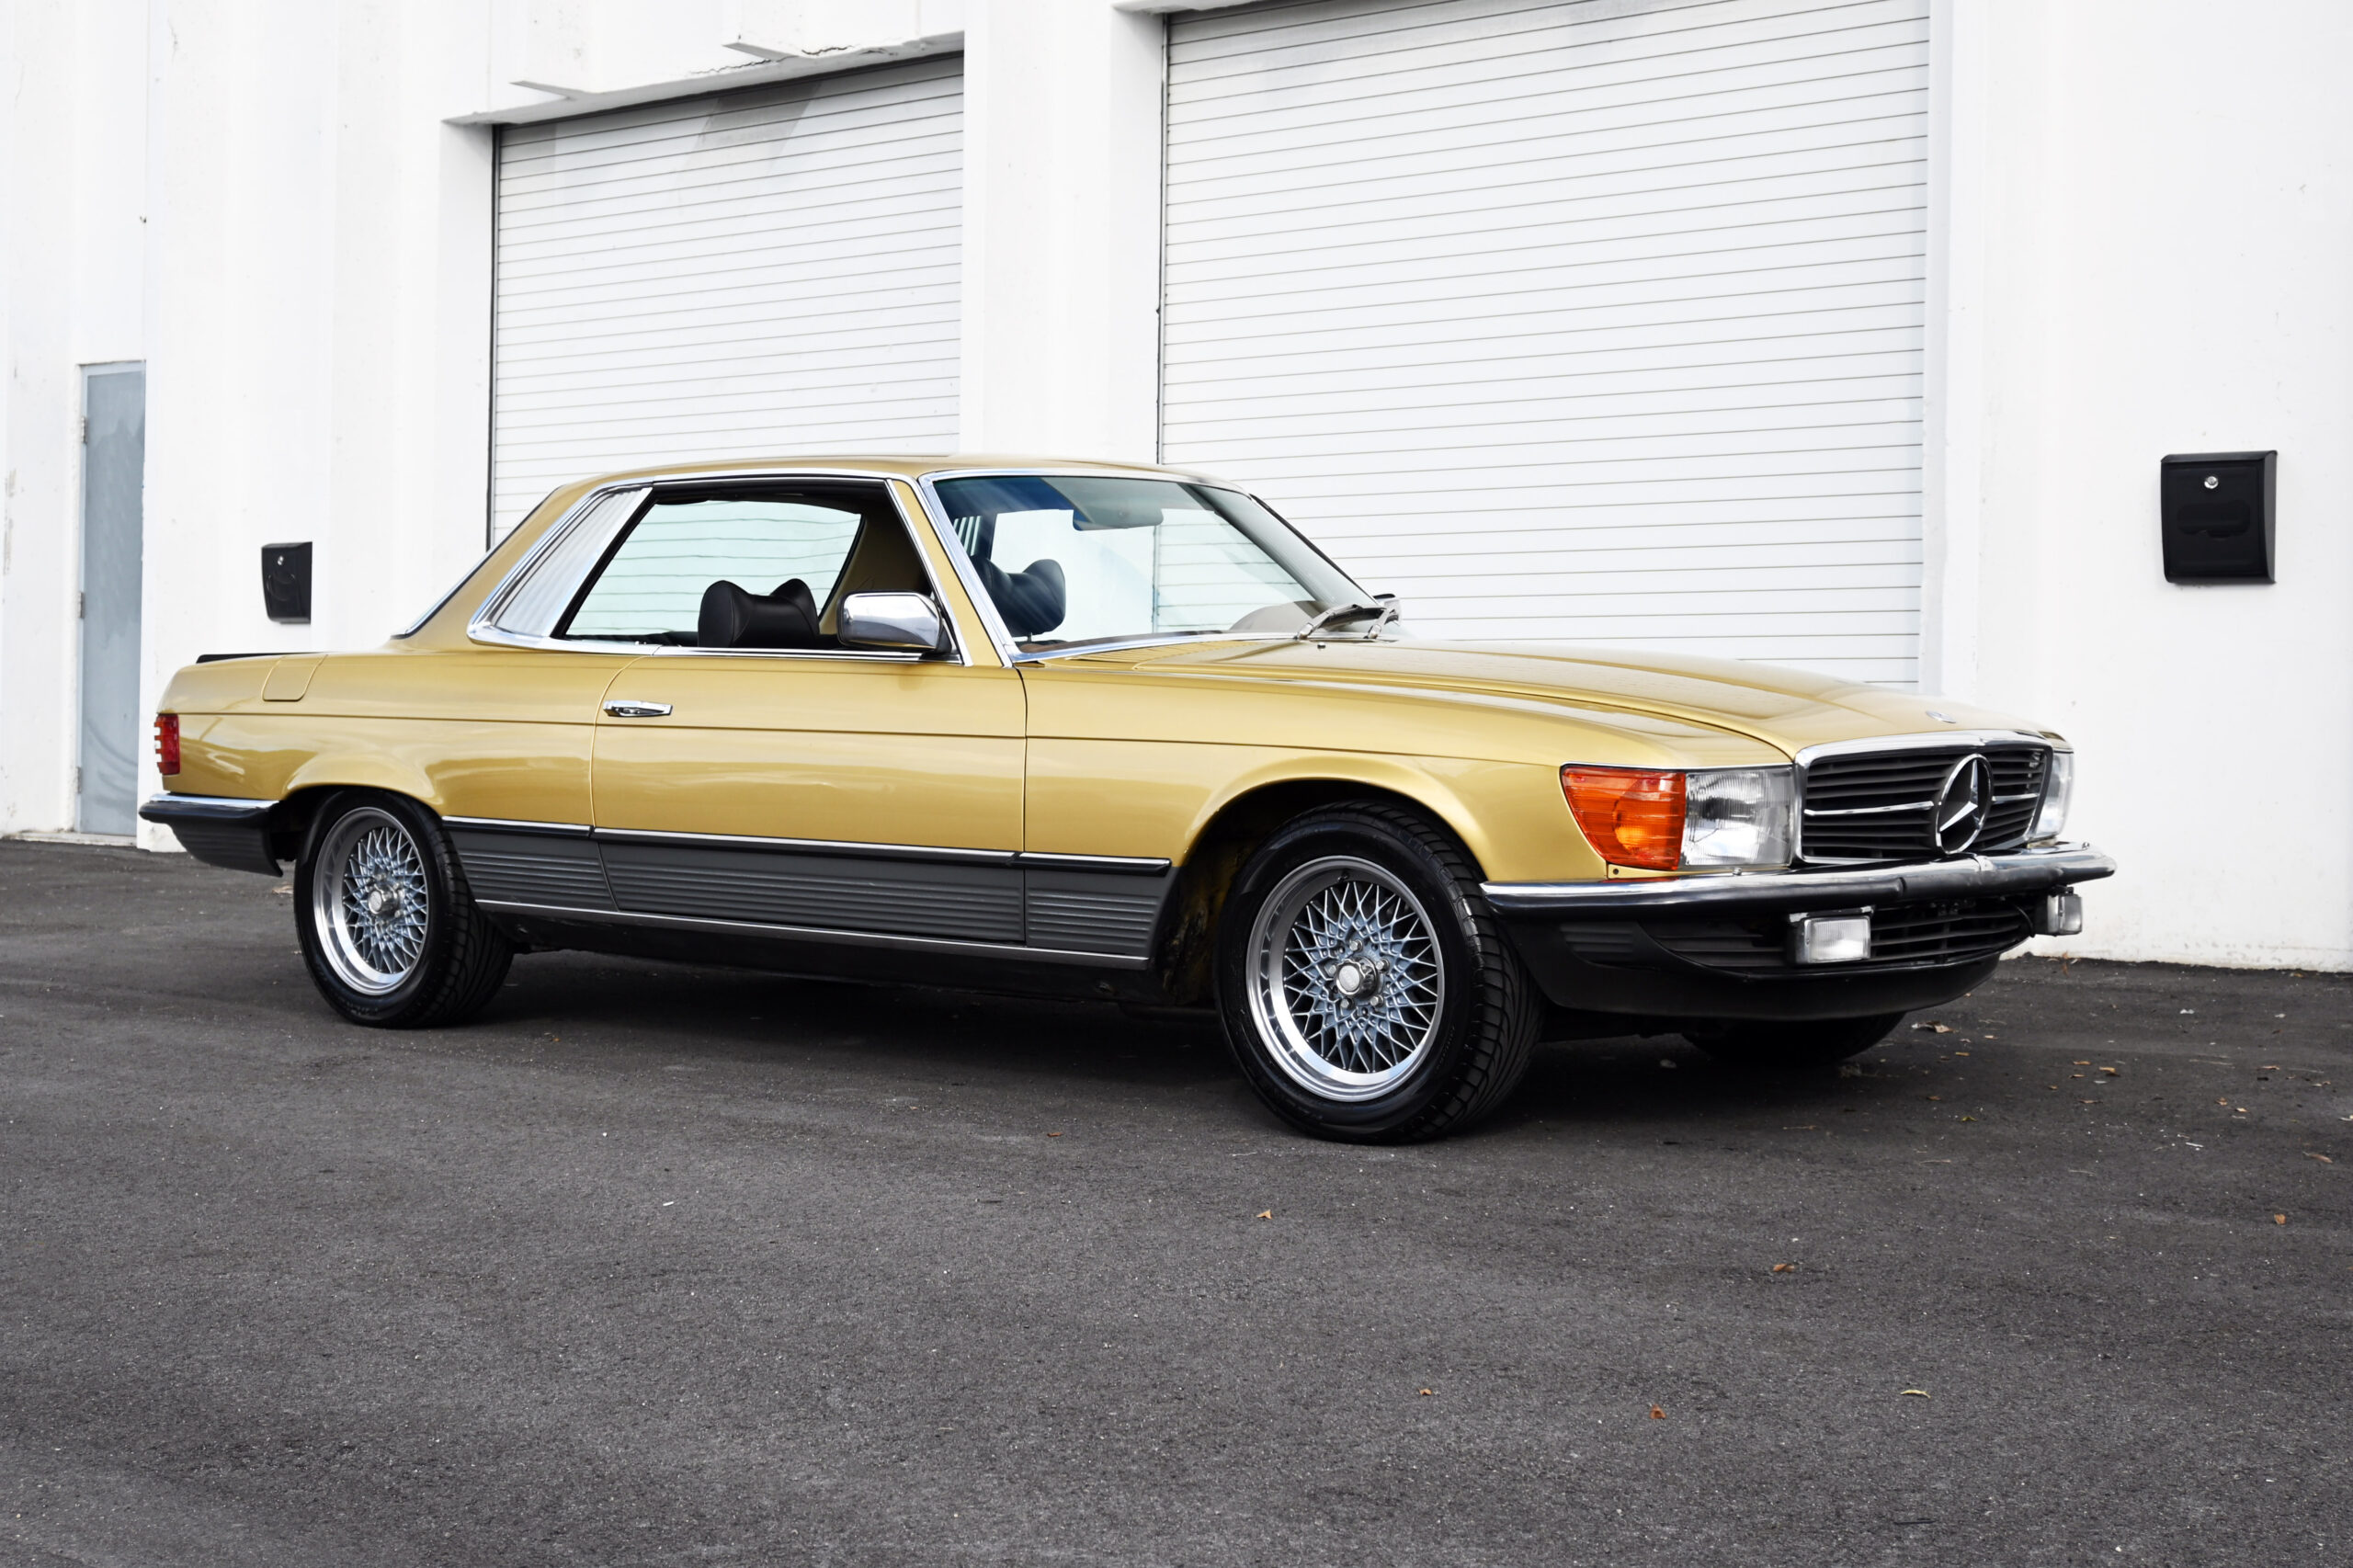 1979 Mercedes-Benz 450 SLC 5.0  Rare FIA lightweight Homologation car